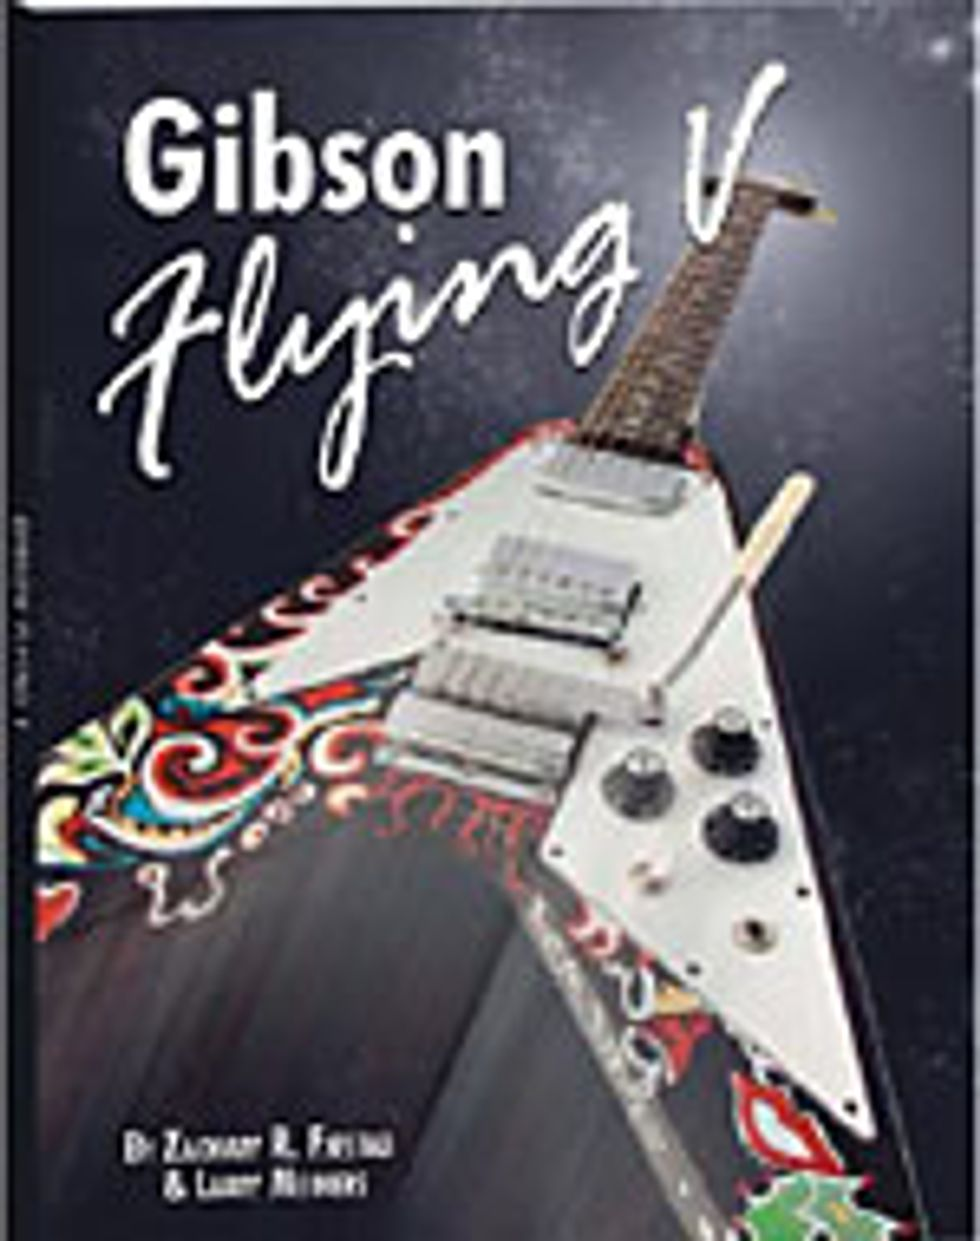 The Gibson Flying V Reference Book